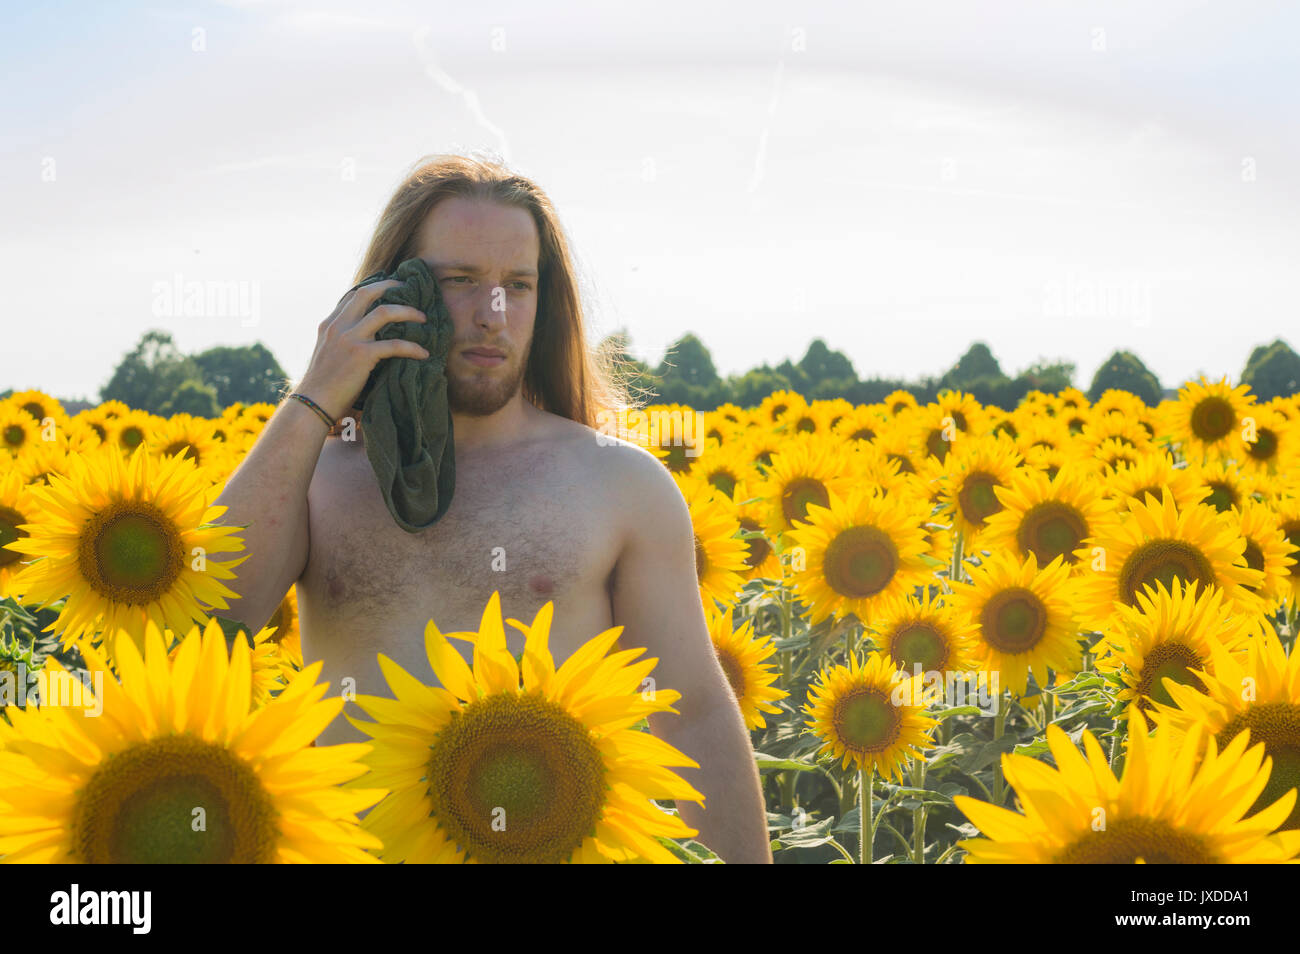 Young model suffers heat in a sunflower field - Stock Image